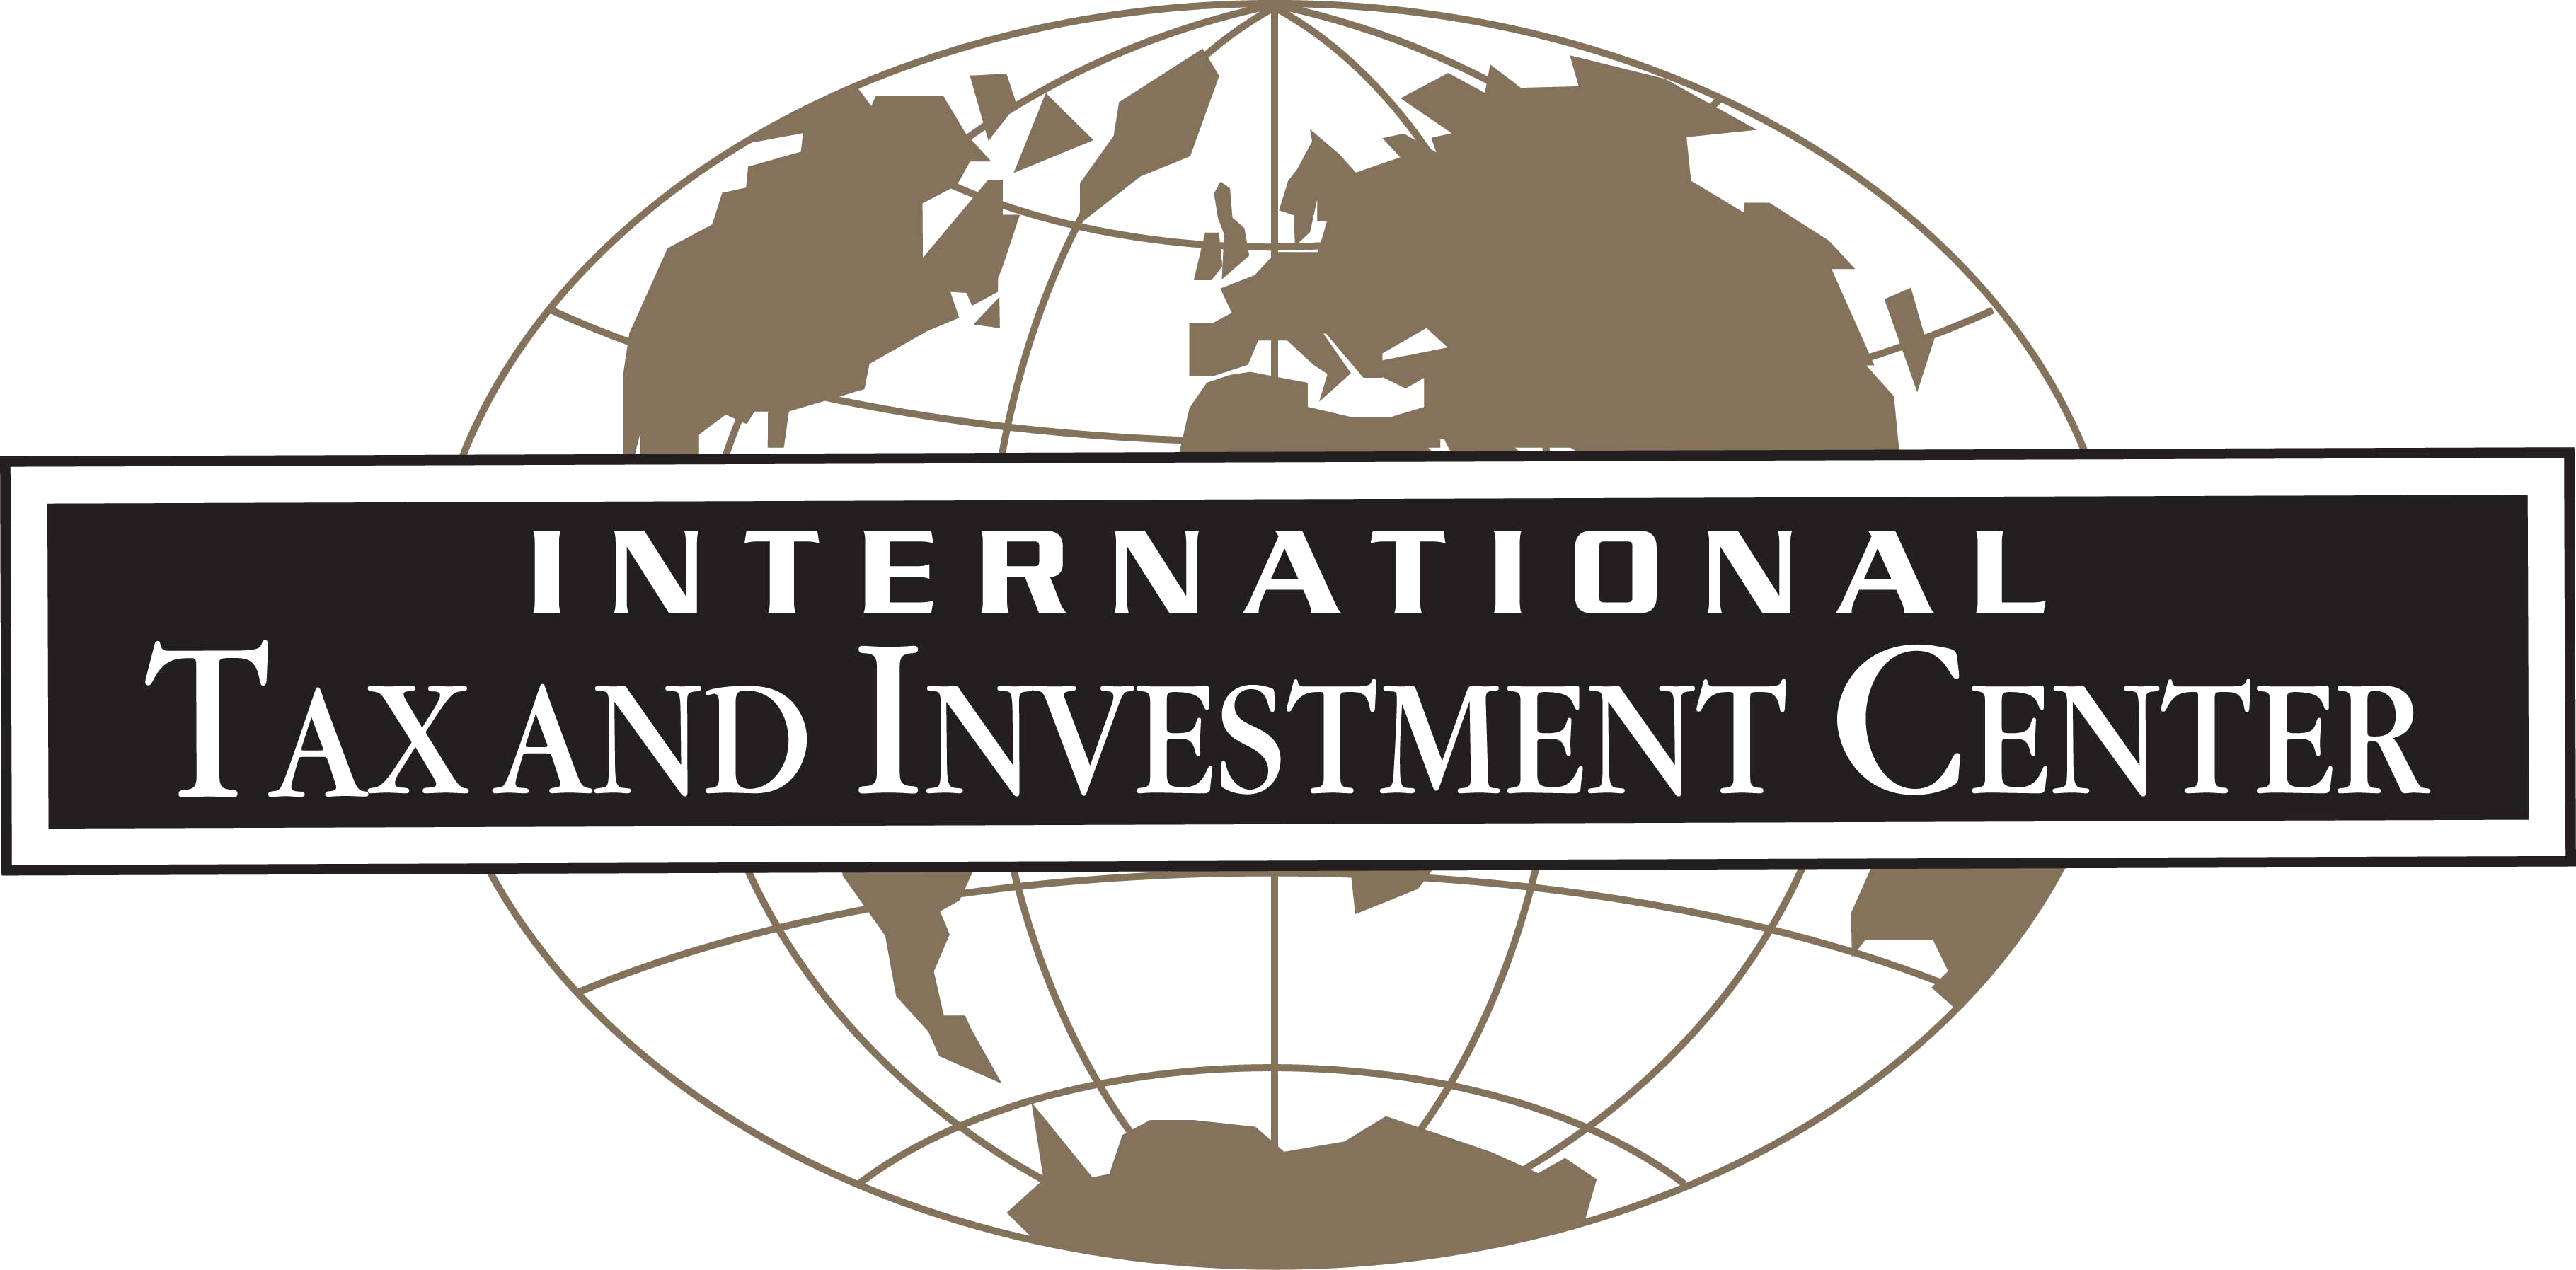 The International Tax and Investment Center